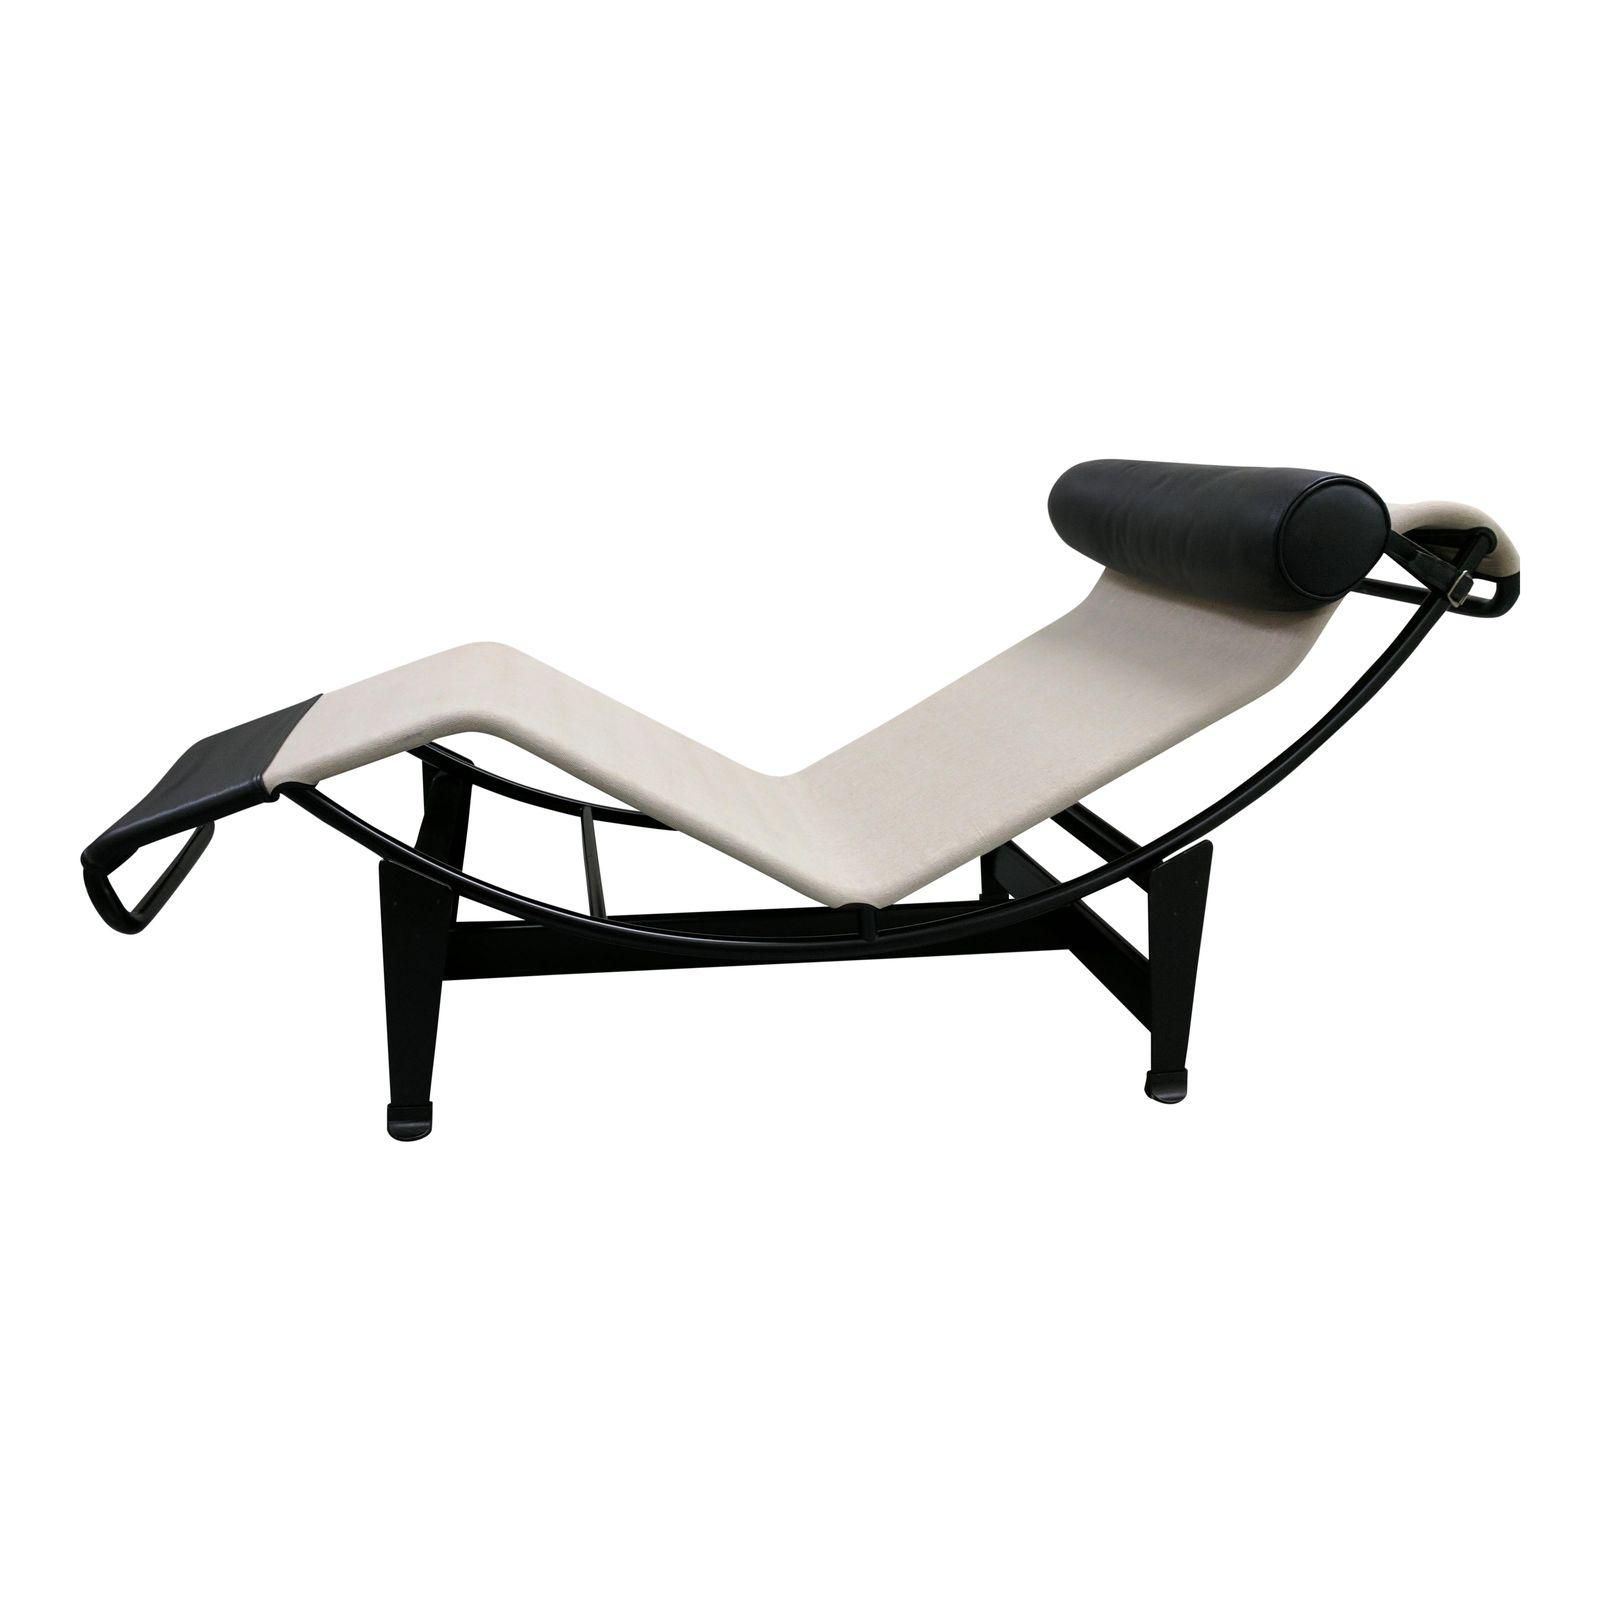 Image Of Le Corbusier Designed Lc4 Chaise Longue Le Corbusier Designs Chaise Longue Chaise